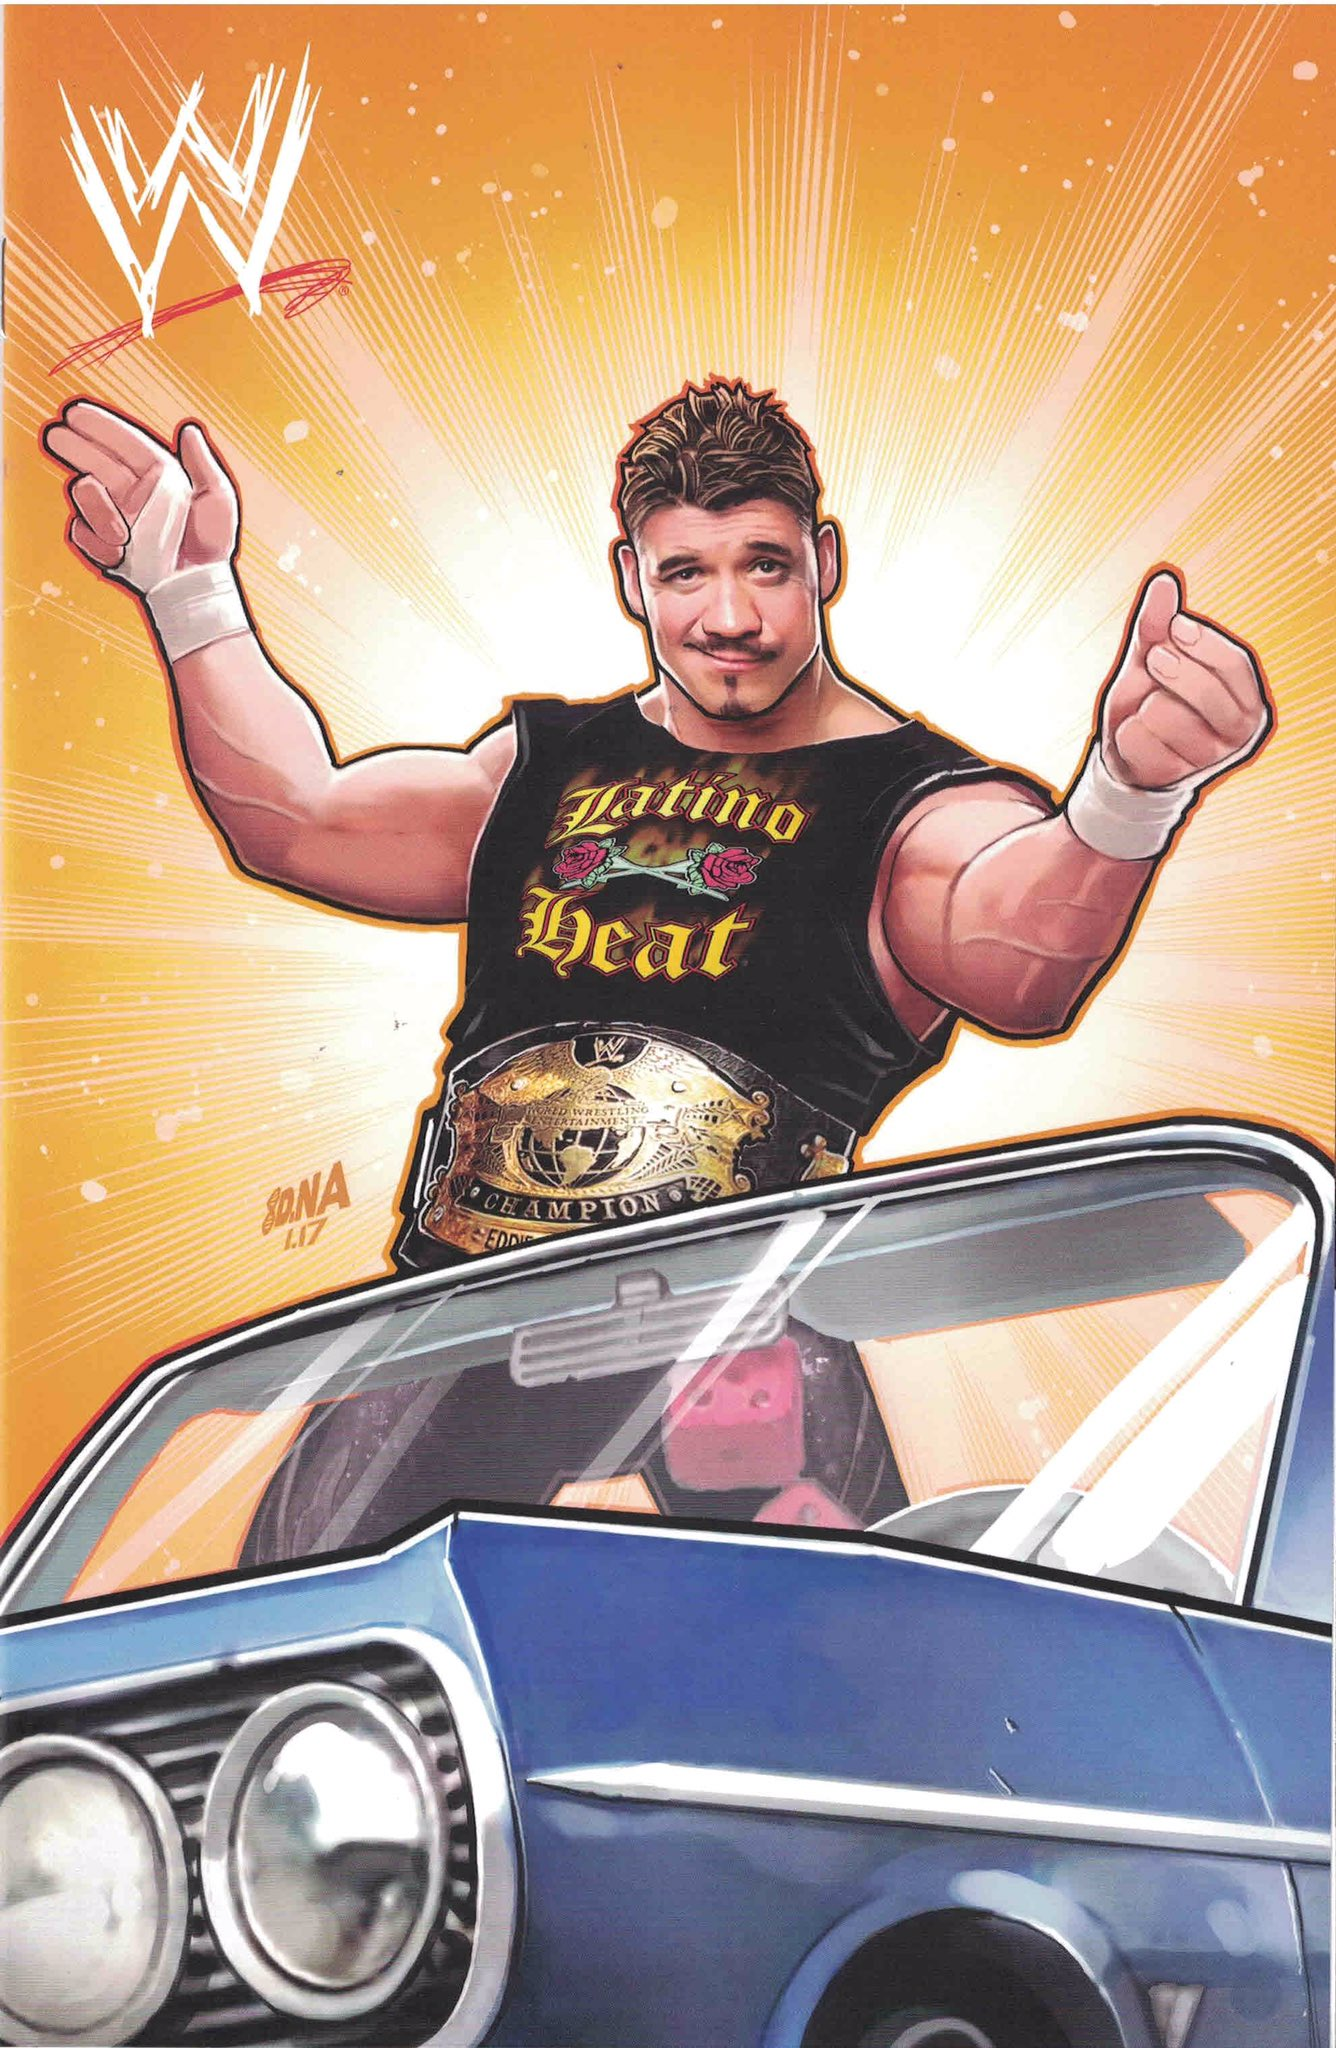 Happy birthday to the late great Eddie Guerrero! Gone but NEVER forgotten.